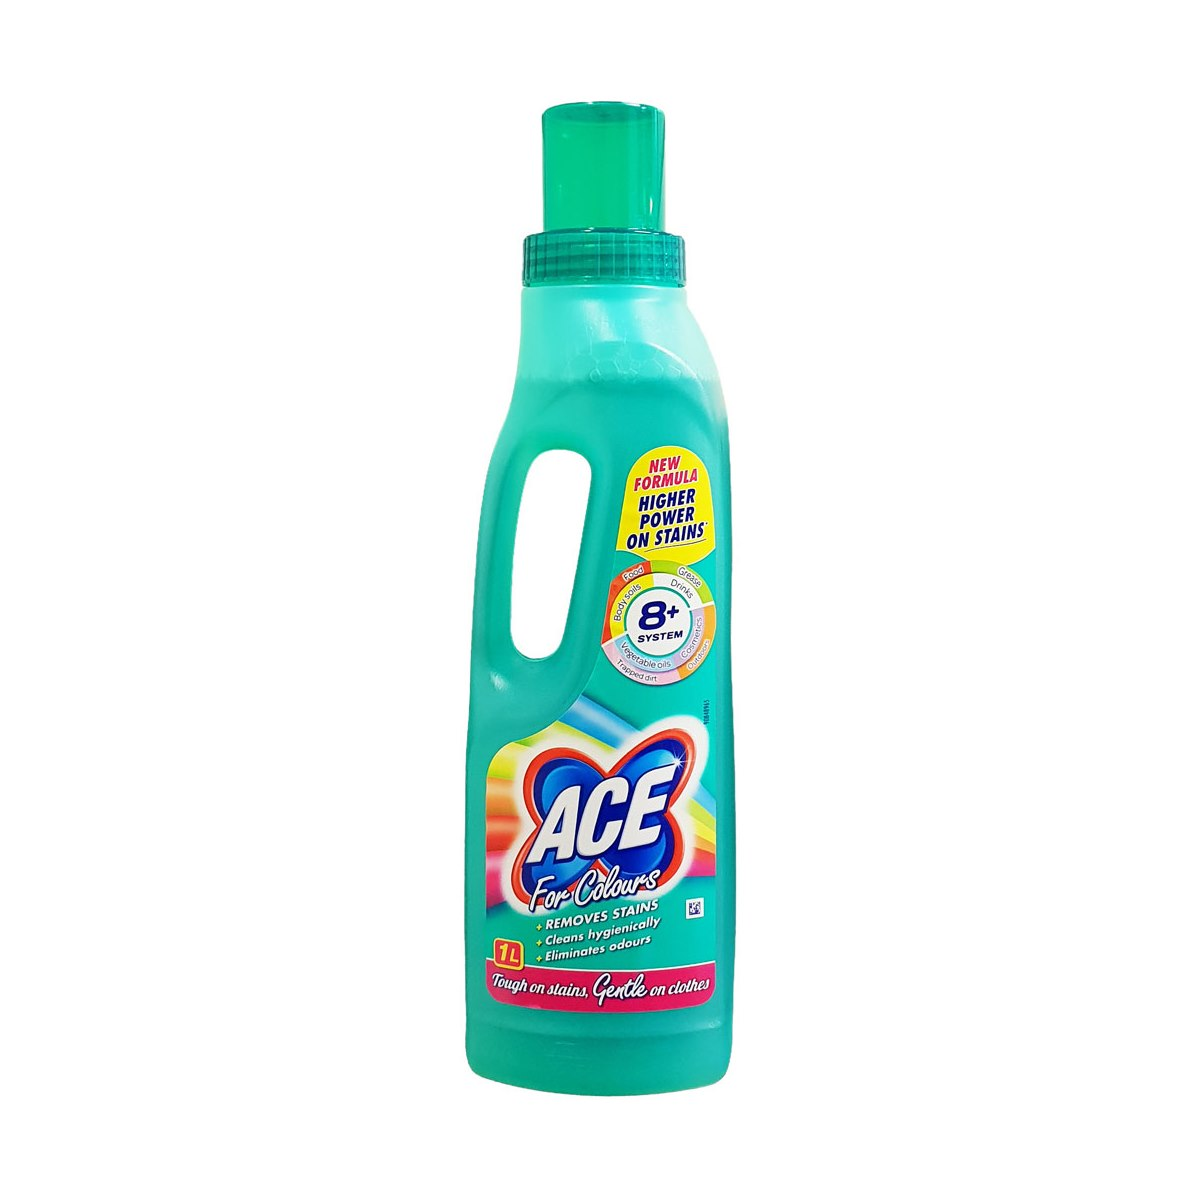 ACE LAUNDRY FOR COLOURS 1LTR